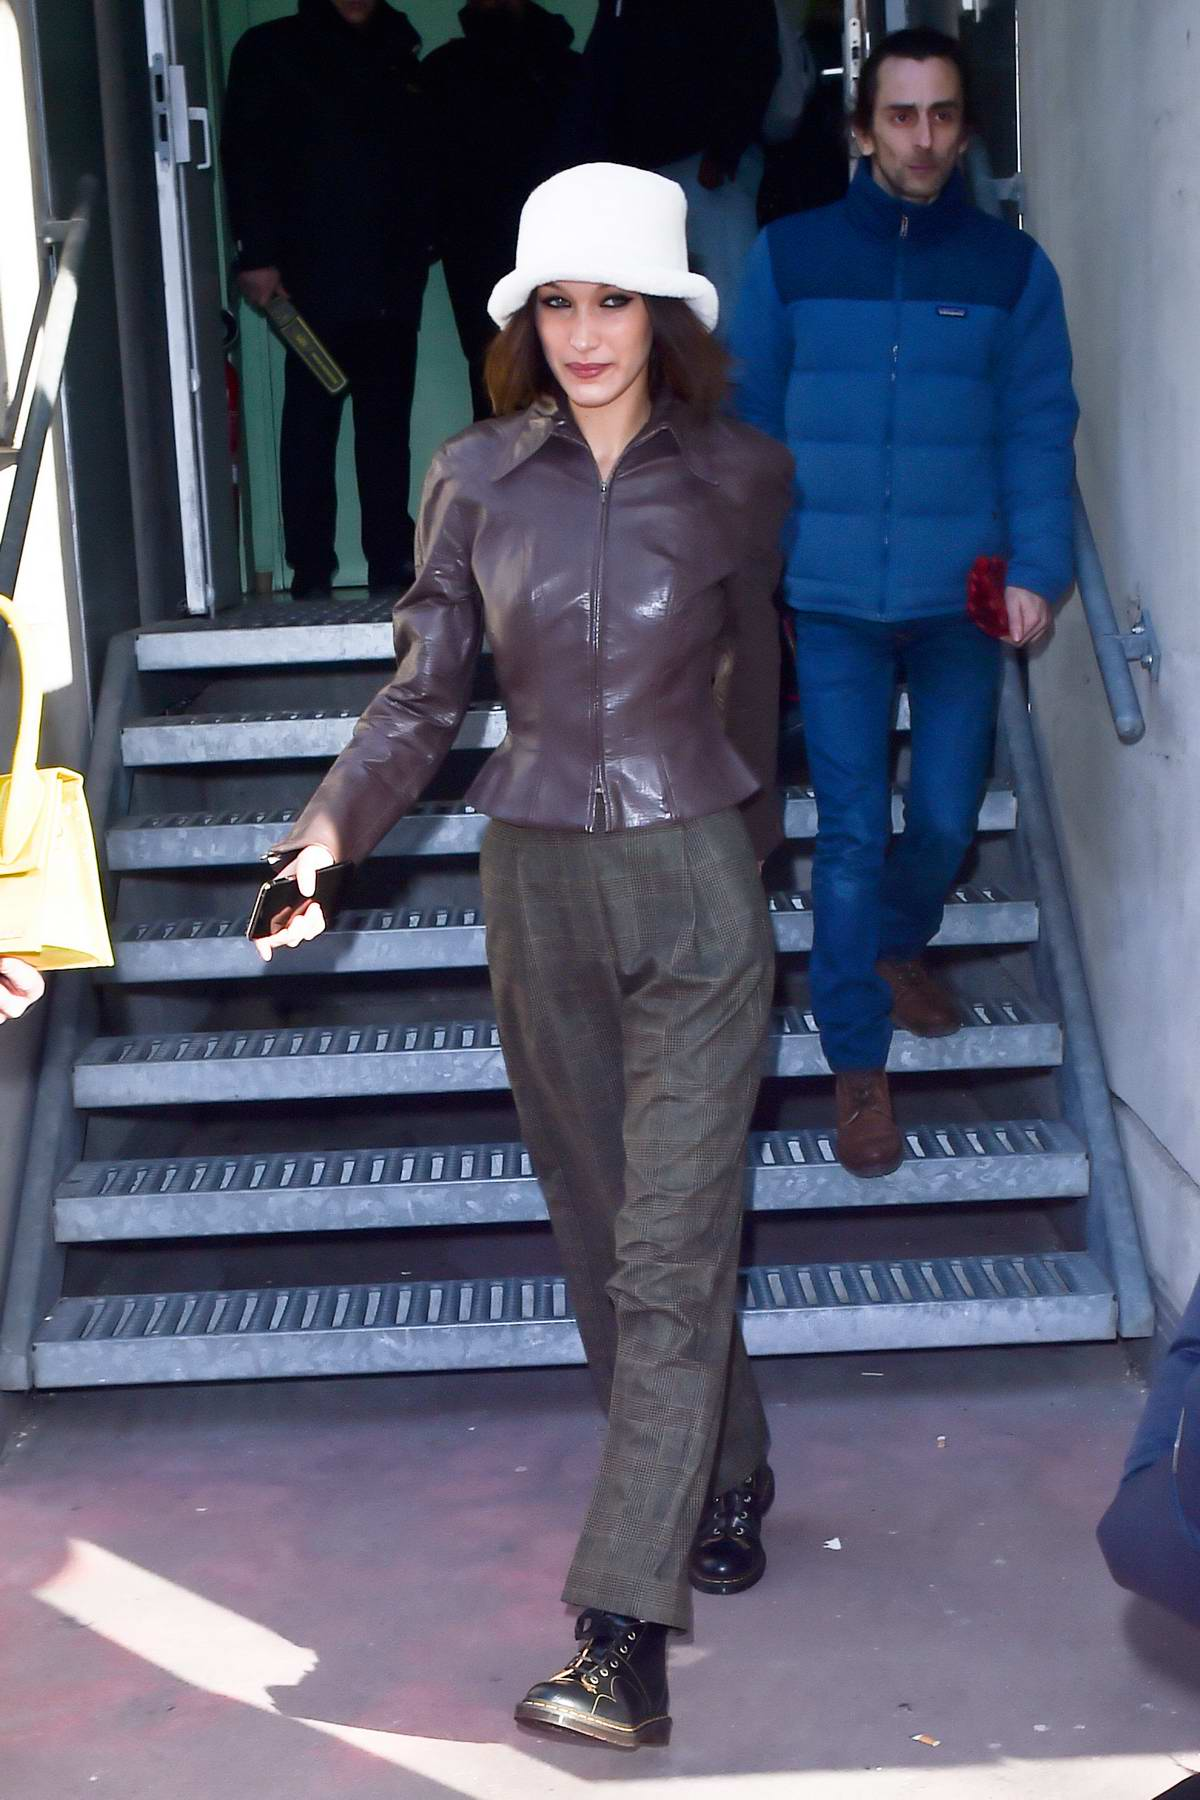 Bella Hadid seen wearing a white hat and leather jacket while out during Fashion Week 2020 in Paris, France